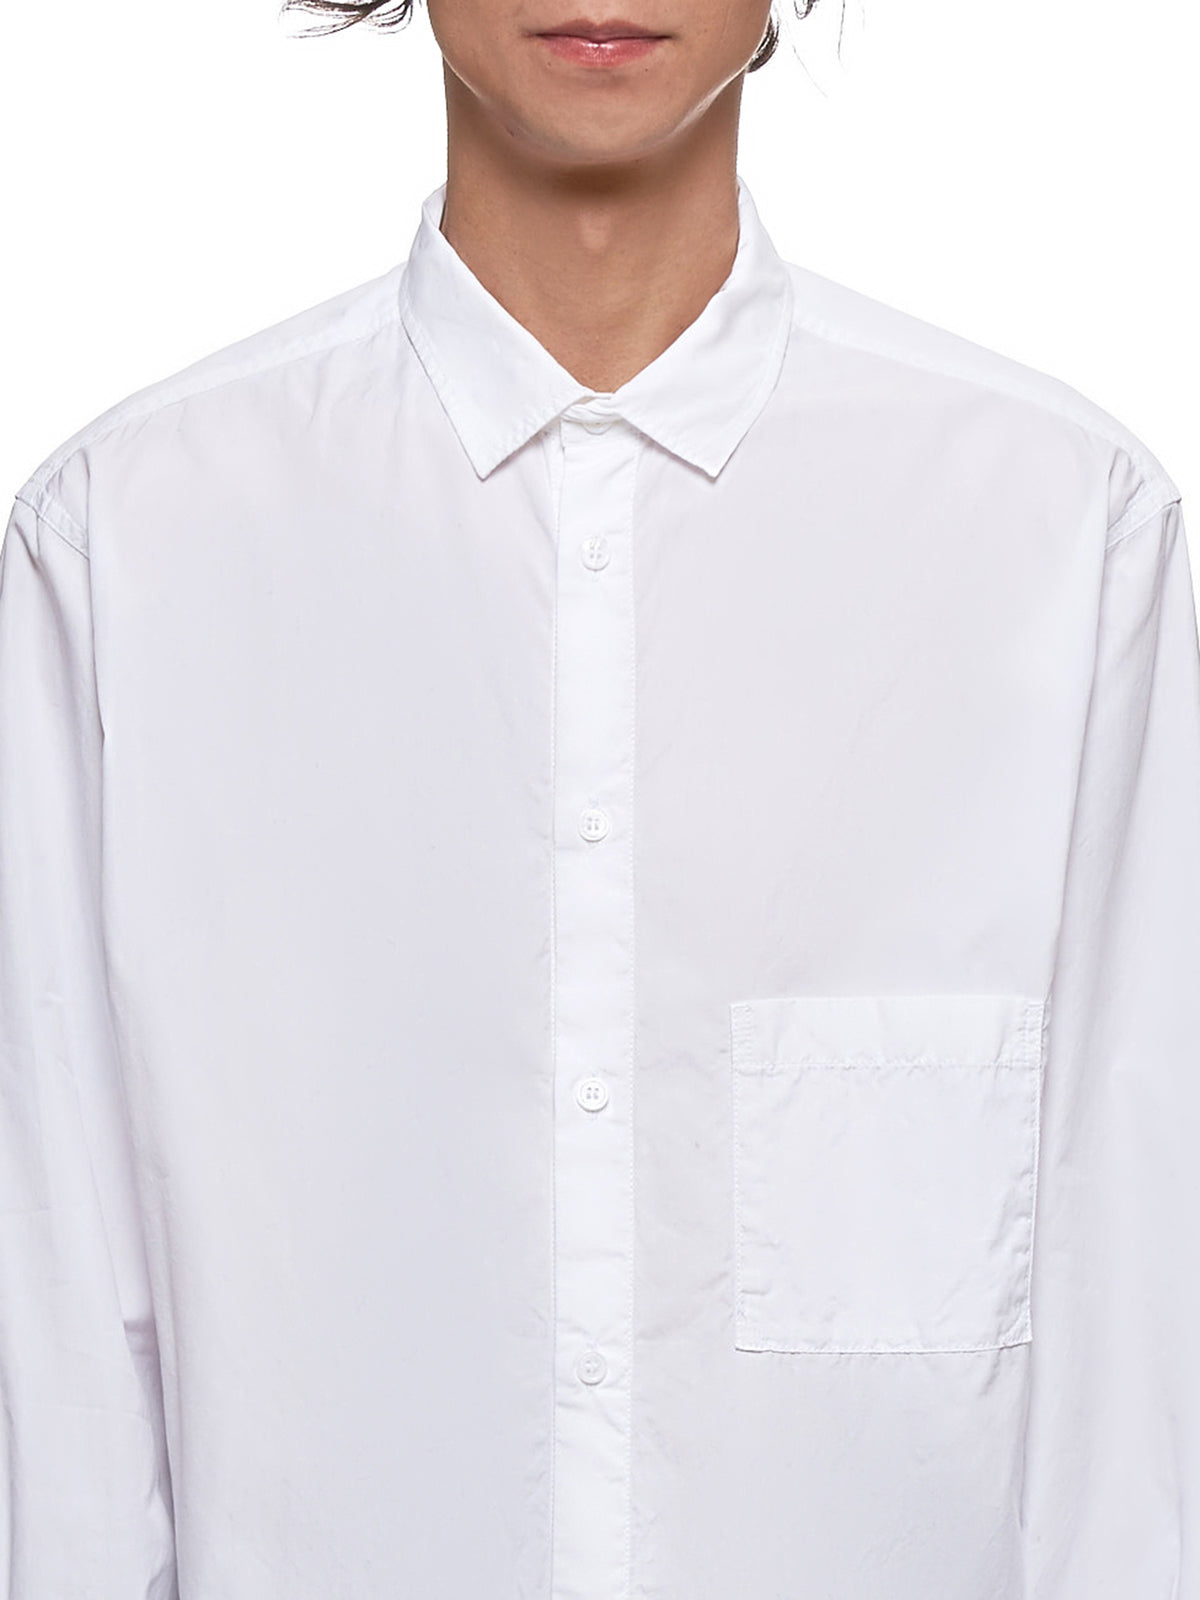 Elongated Shirt (HC-B62-007-WHITE)